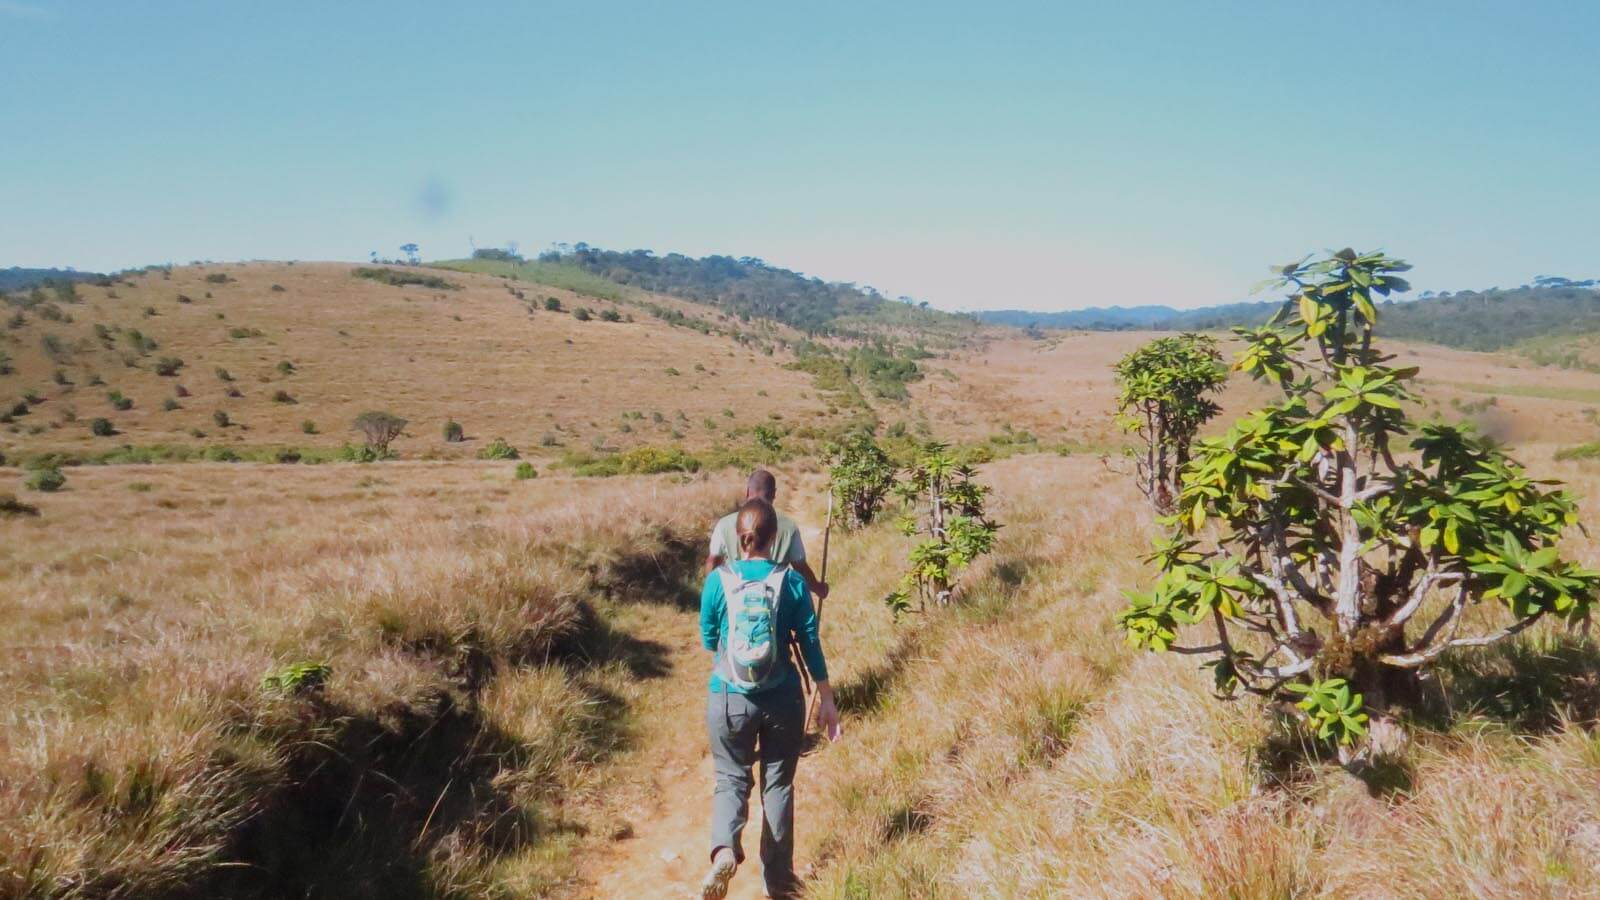 Trekking and Hiking in Sri Lanka